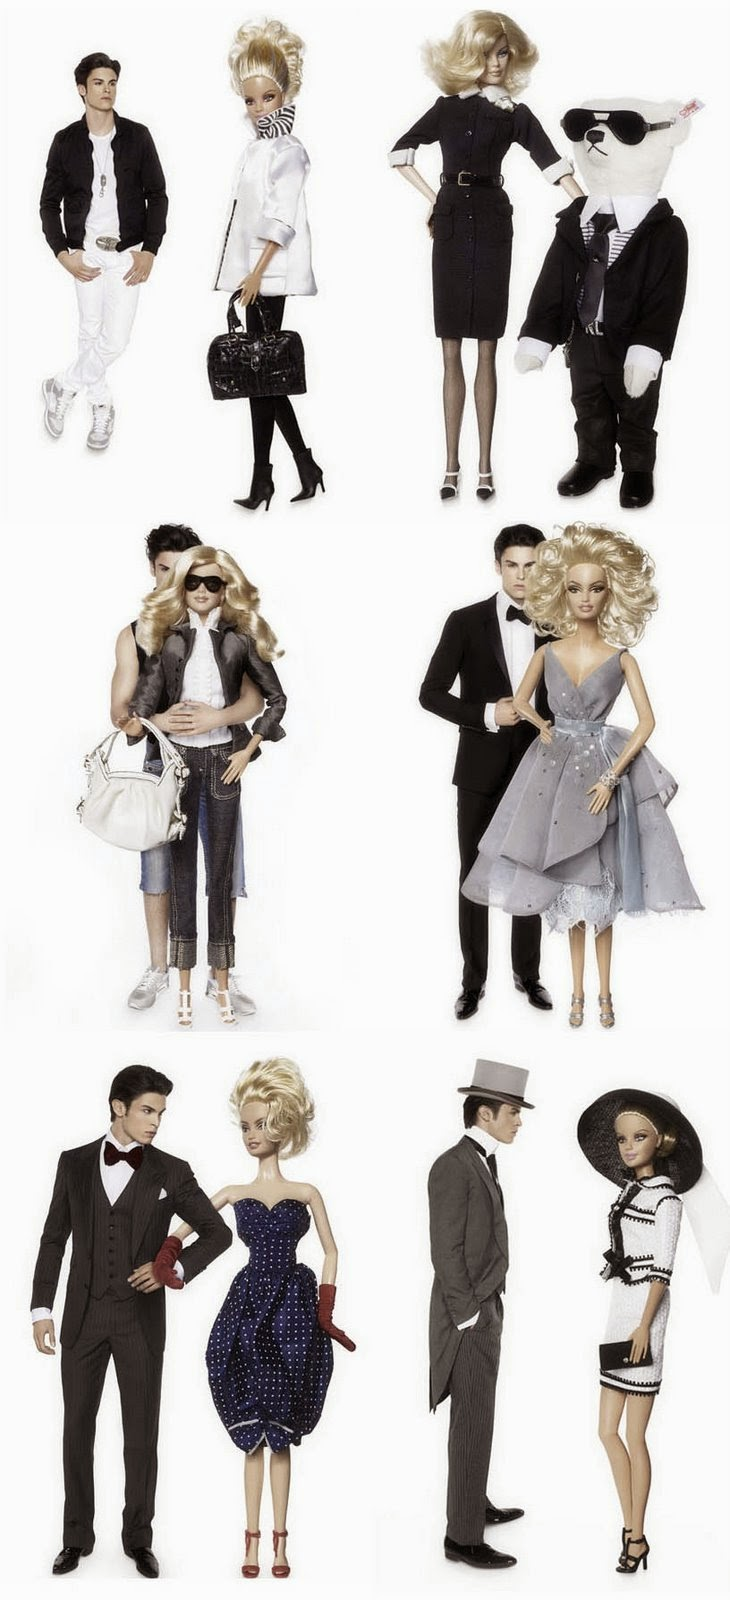 Barbie Gets New Style by Karl Lagerfeld ~ Modernistic Design